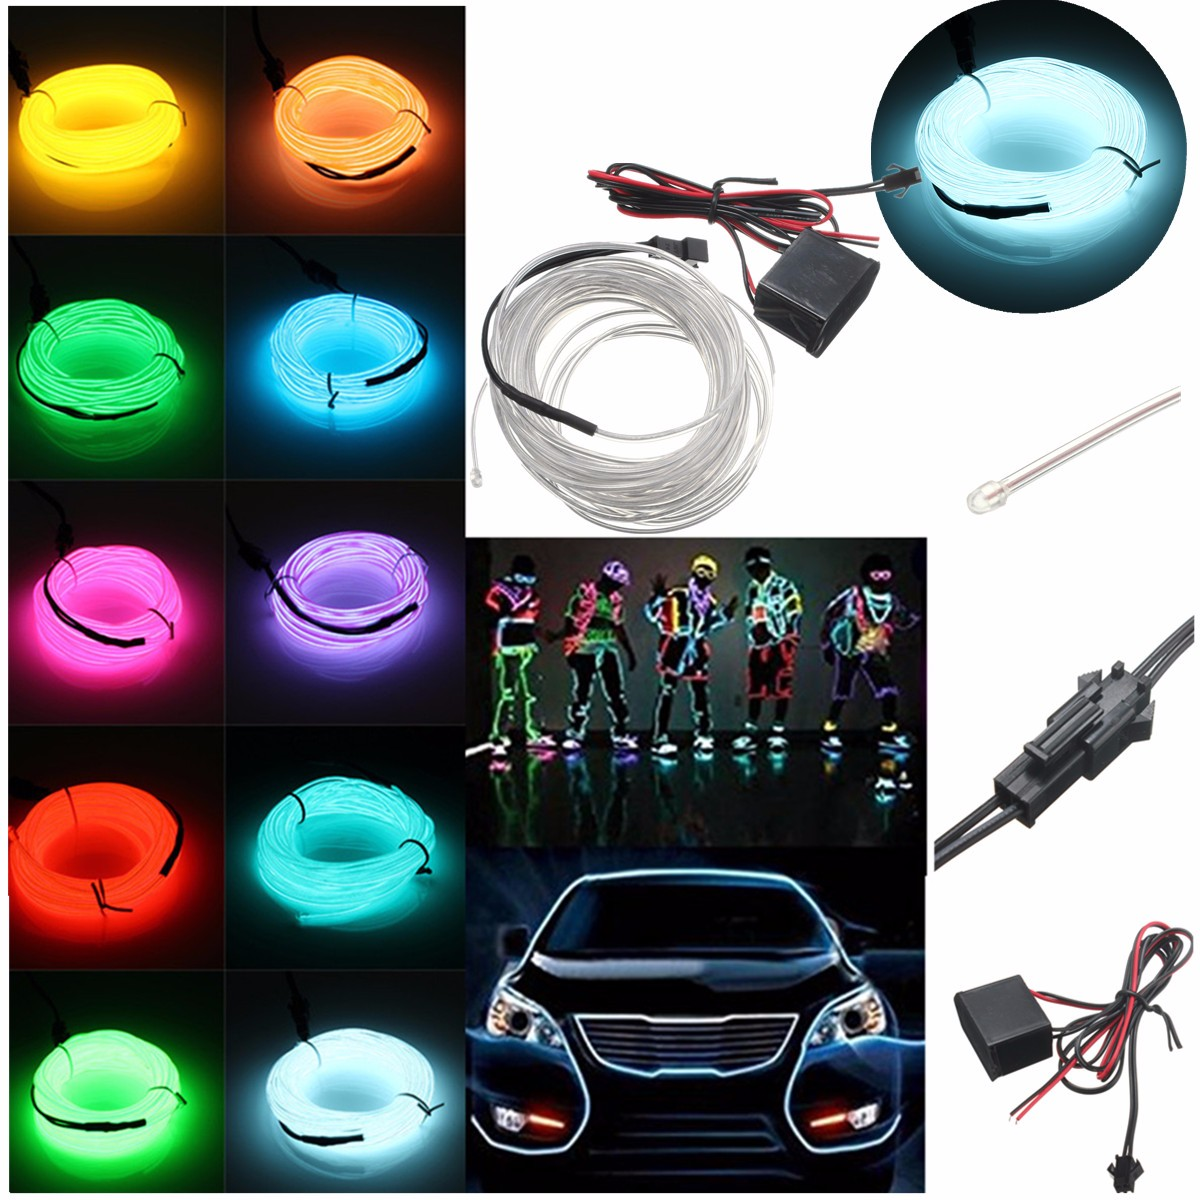 Smuxi 5M Flexible EL Wire Neon Light Dance Party Decor Light Neon LED Lamp EL Wire Rope Tube Waterproof LED Strip+Controller